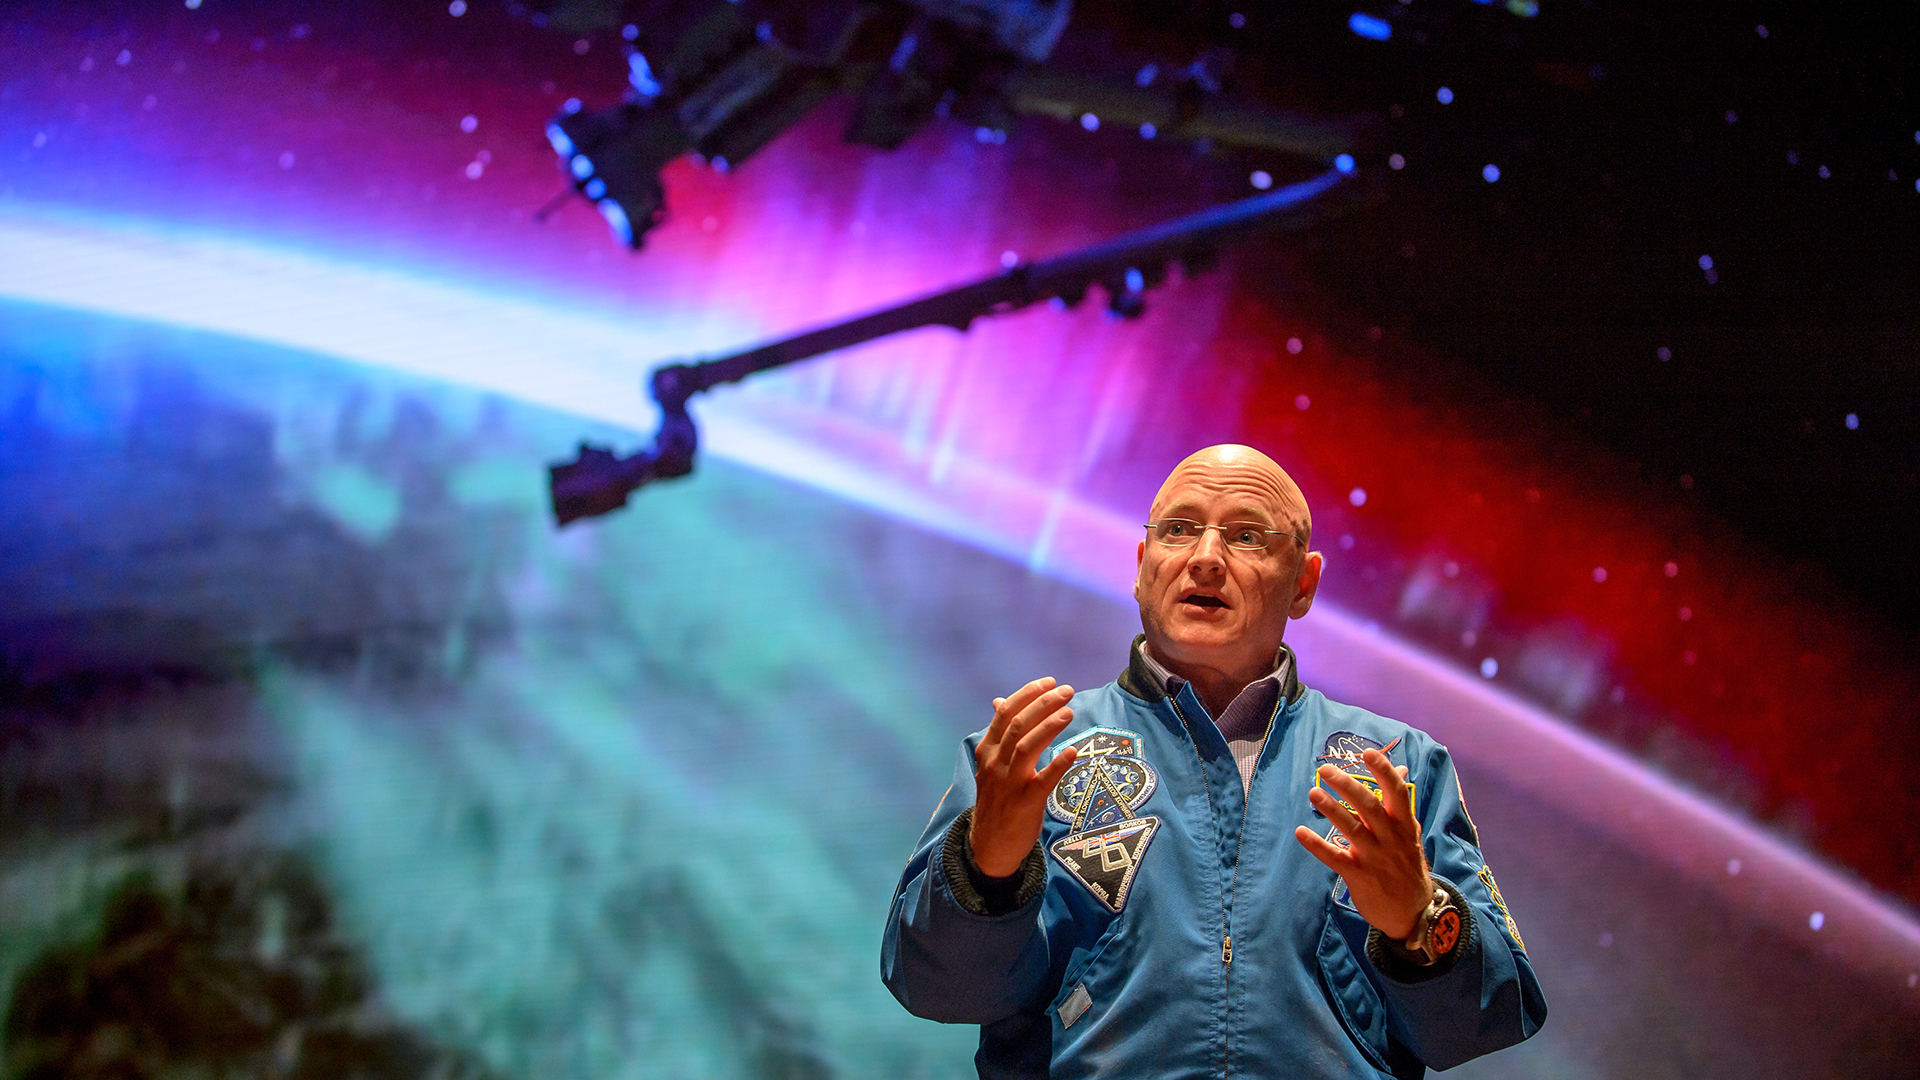 Scott Kelly's re-entry to Earth explored in 'Beyond a Year in Space'